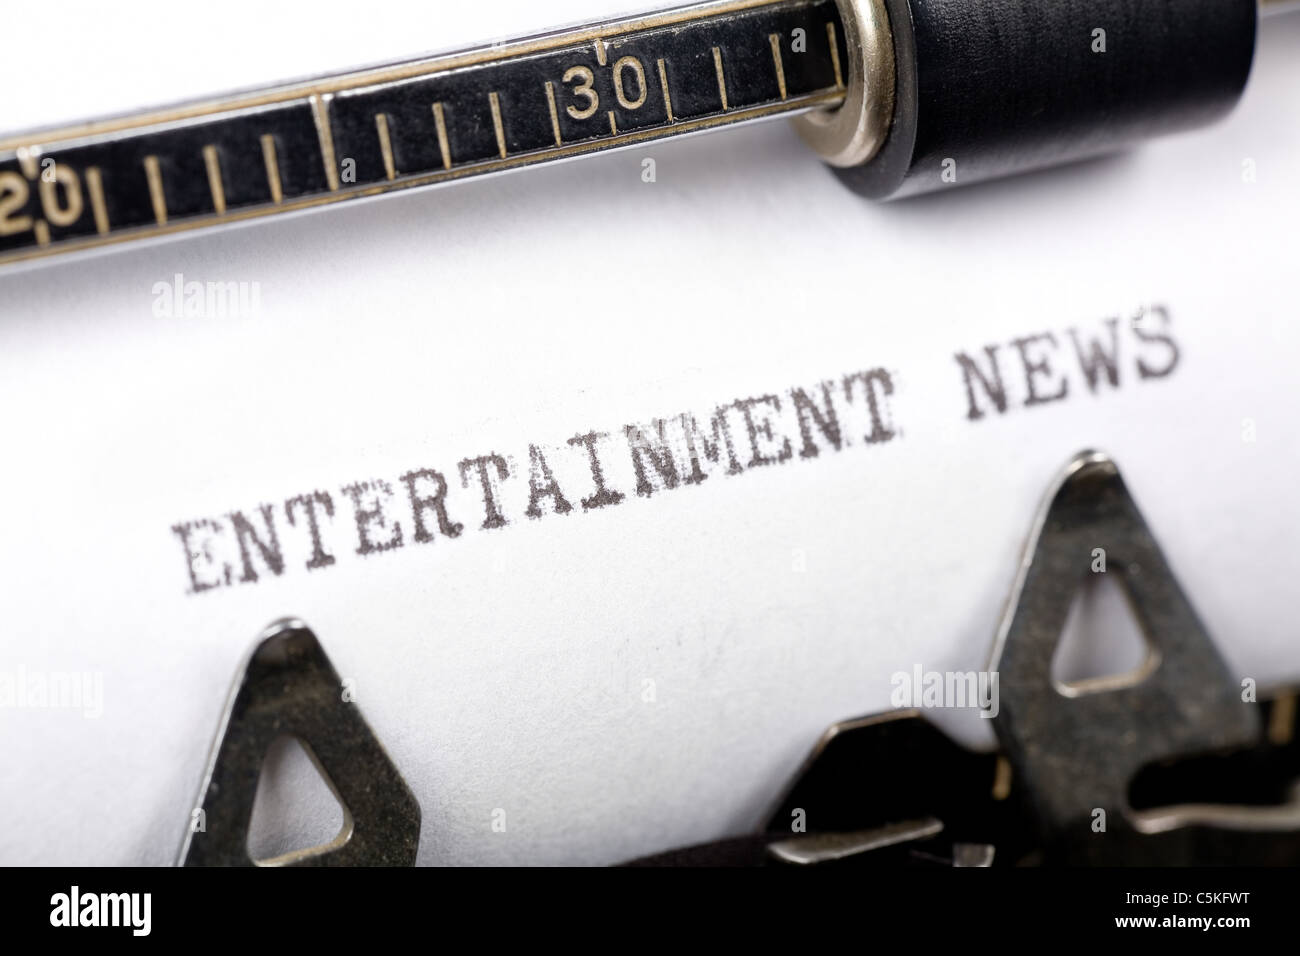 Typewriter close up shot, concept of Entertainment News - Stock Image